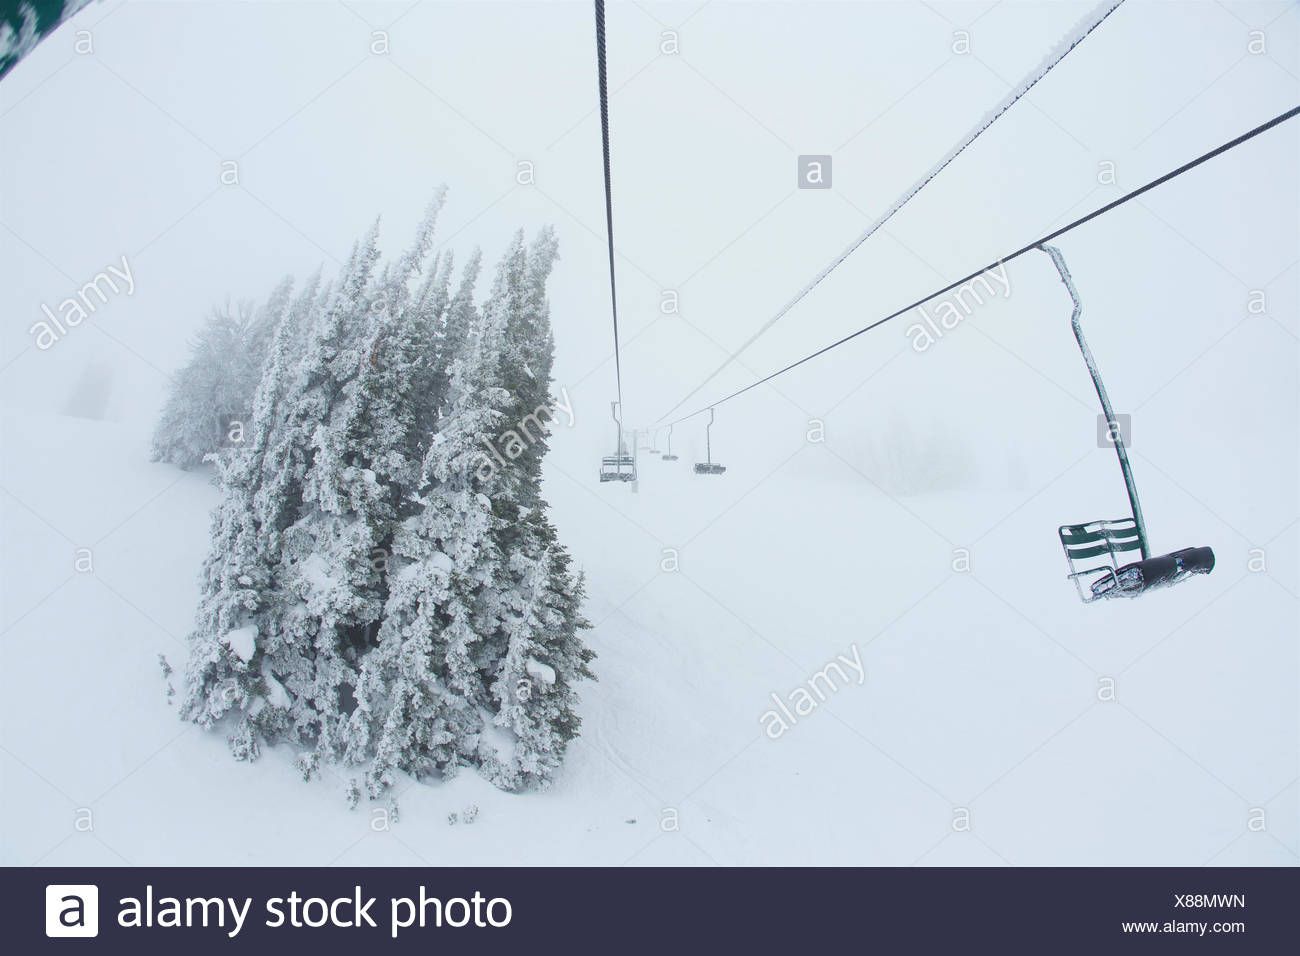 Rime covered chairlift in stormy whiteout conditions. - Stock Image